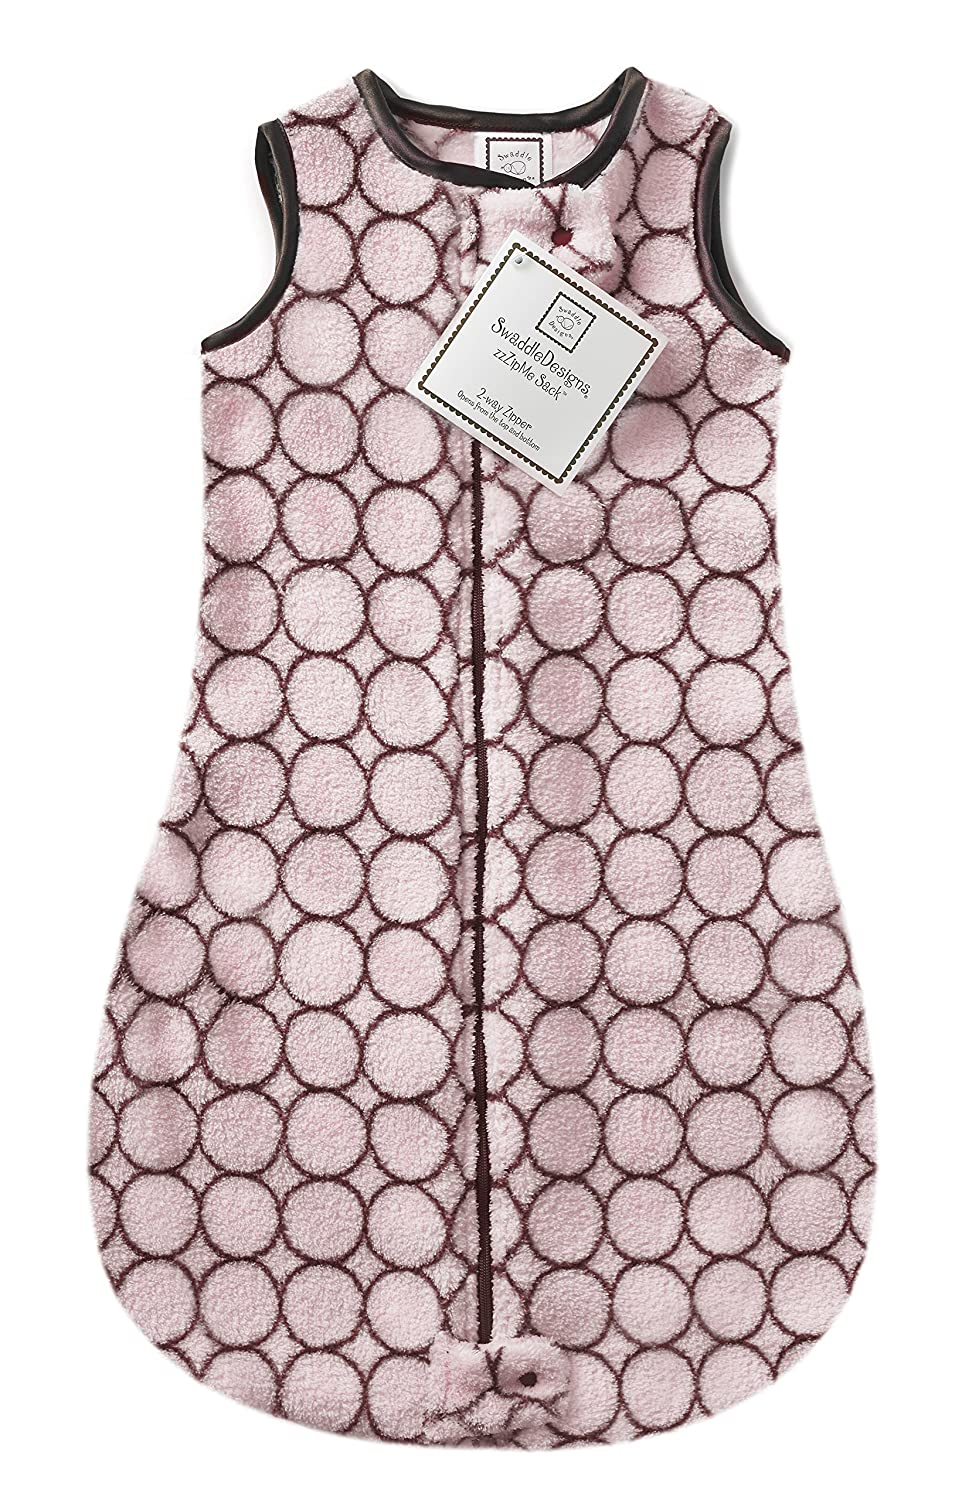 SwaddleDesigns Microplush Sleeping Sack with 2-Way Zipper, Brown Mod Circles on Pink, 3-6MO SD-080PP-3MO